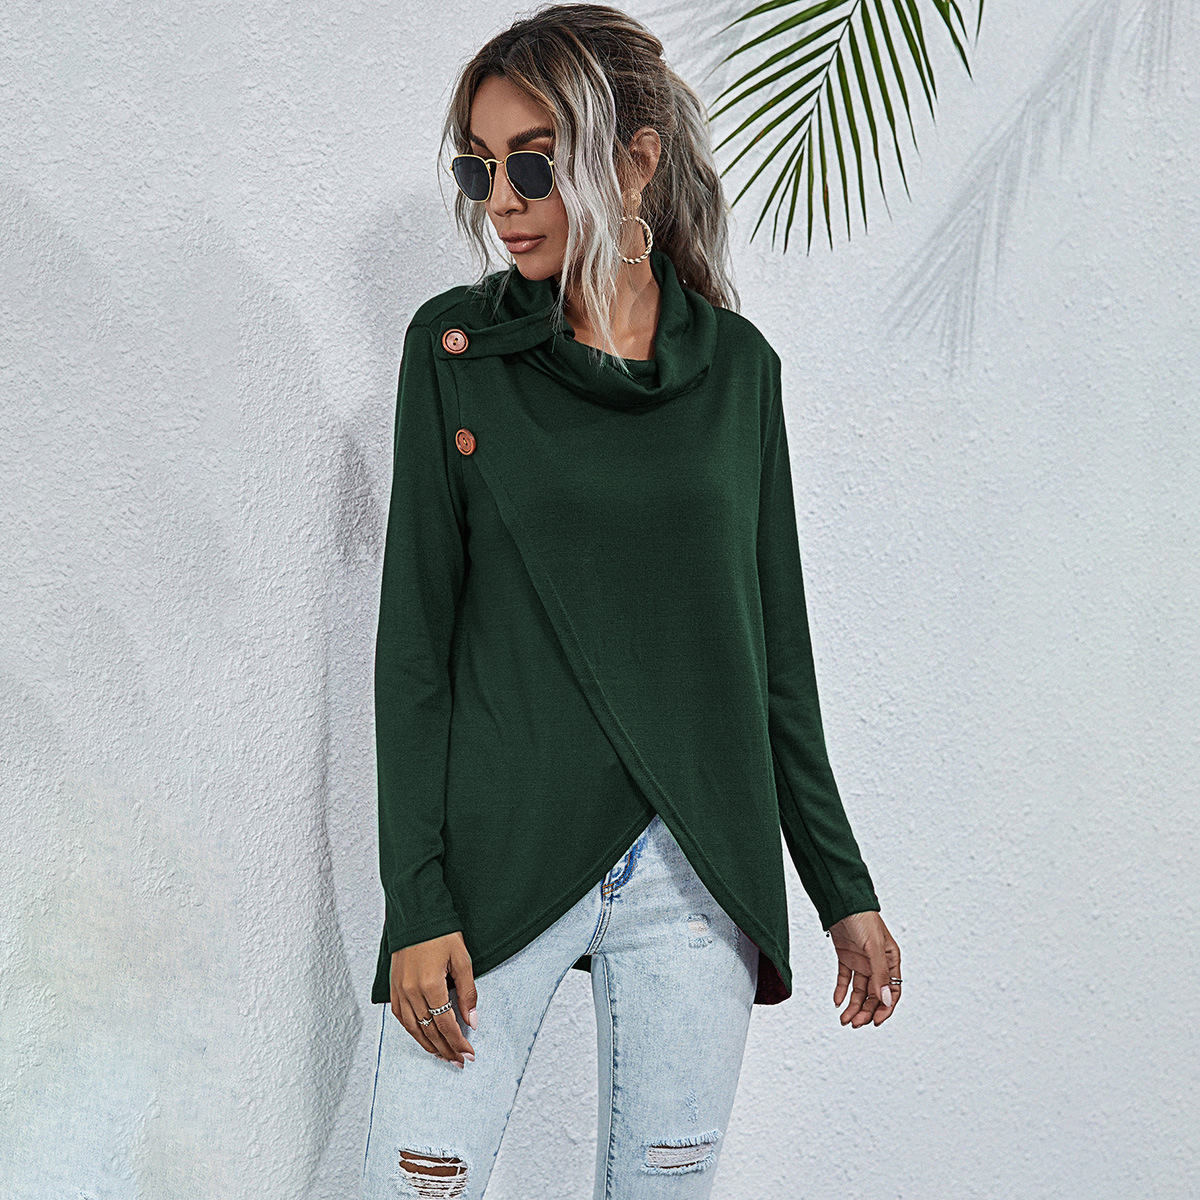 New Multi-Button Sweater Knit Top NSYD3672